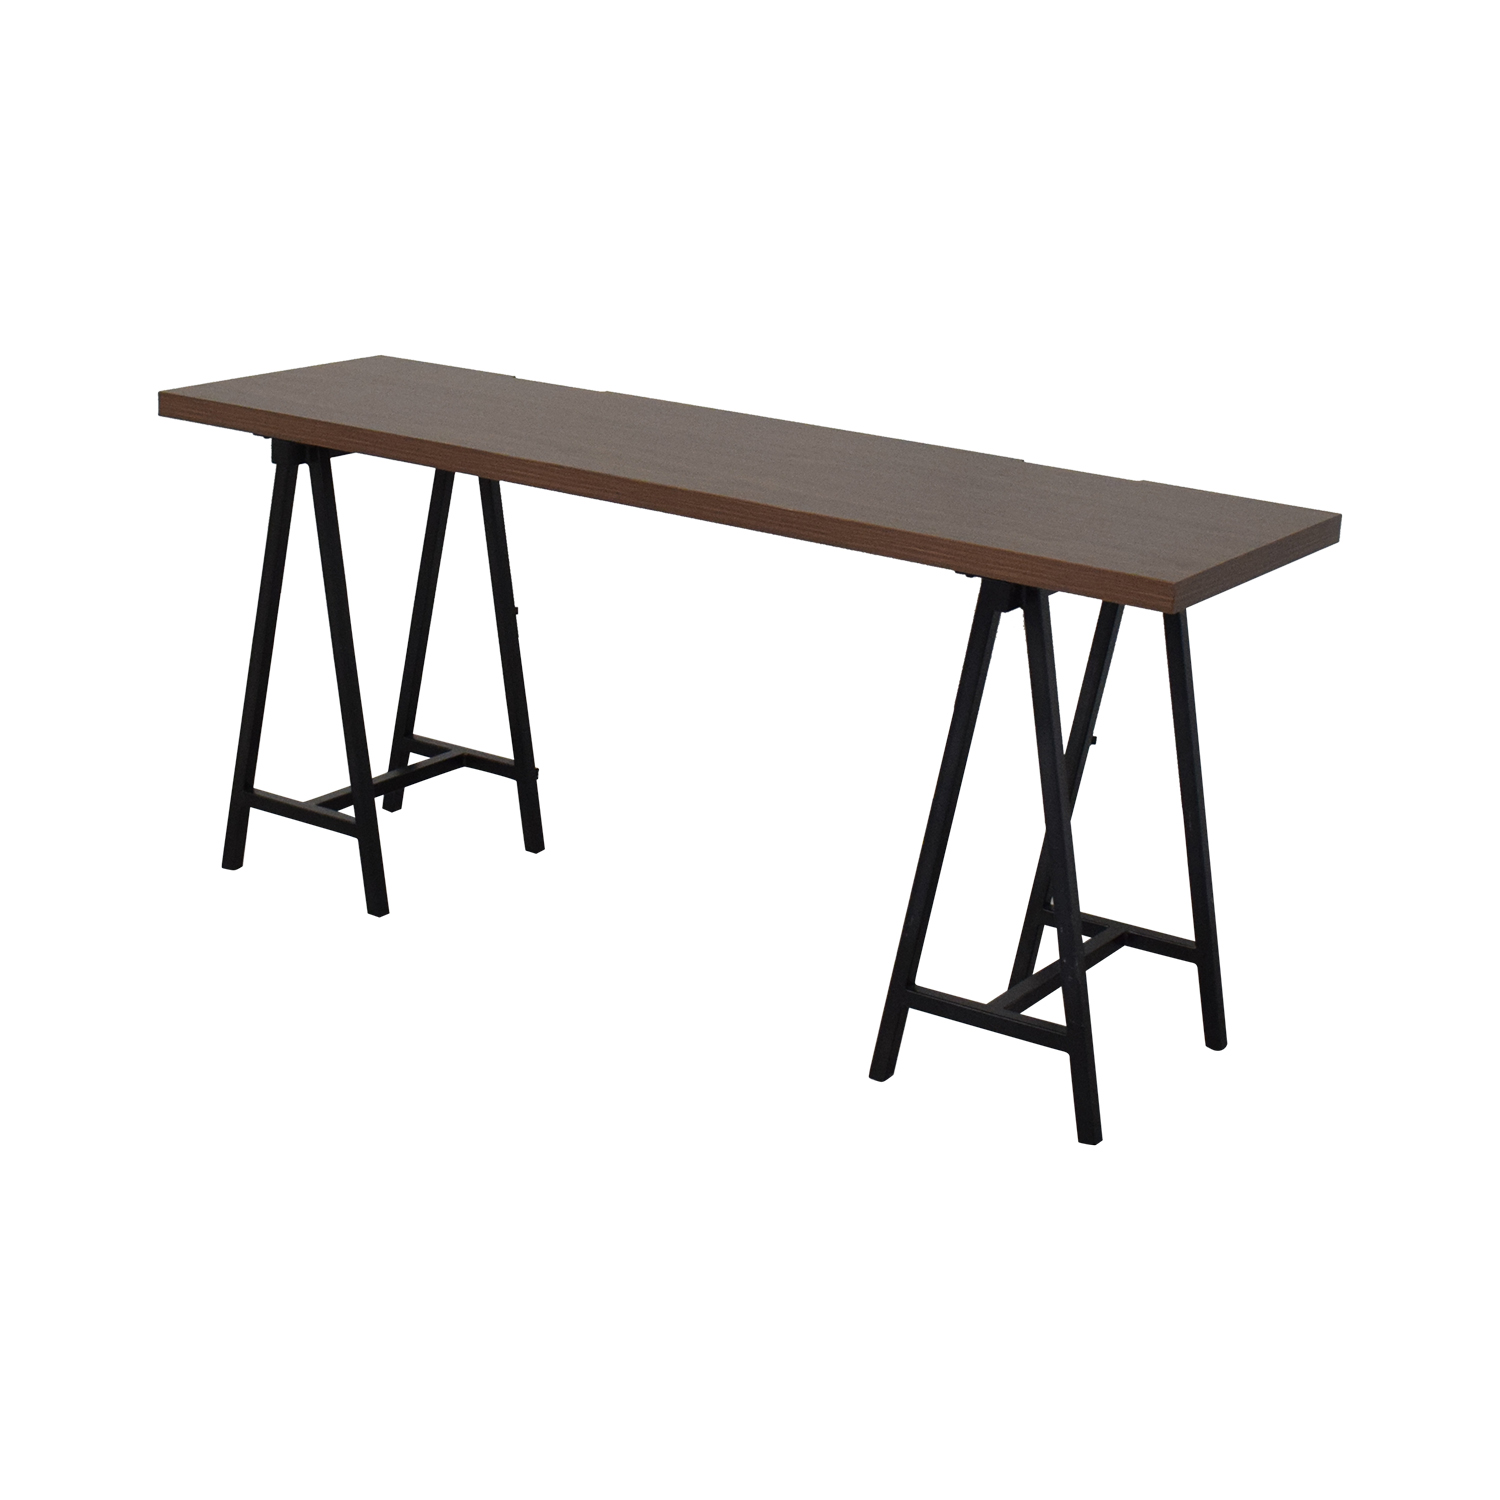 shop West Elm West Elm Cross-Base Desk online